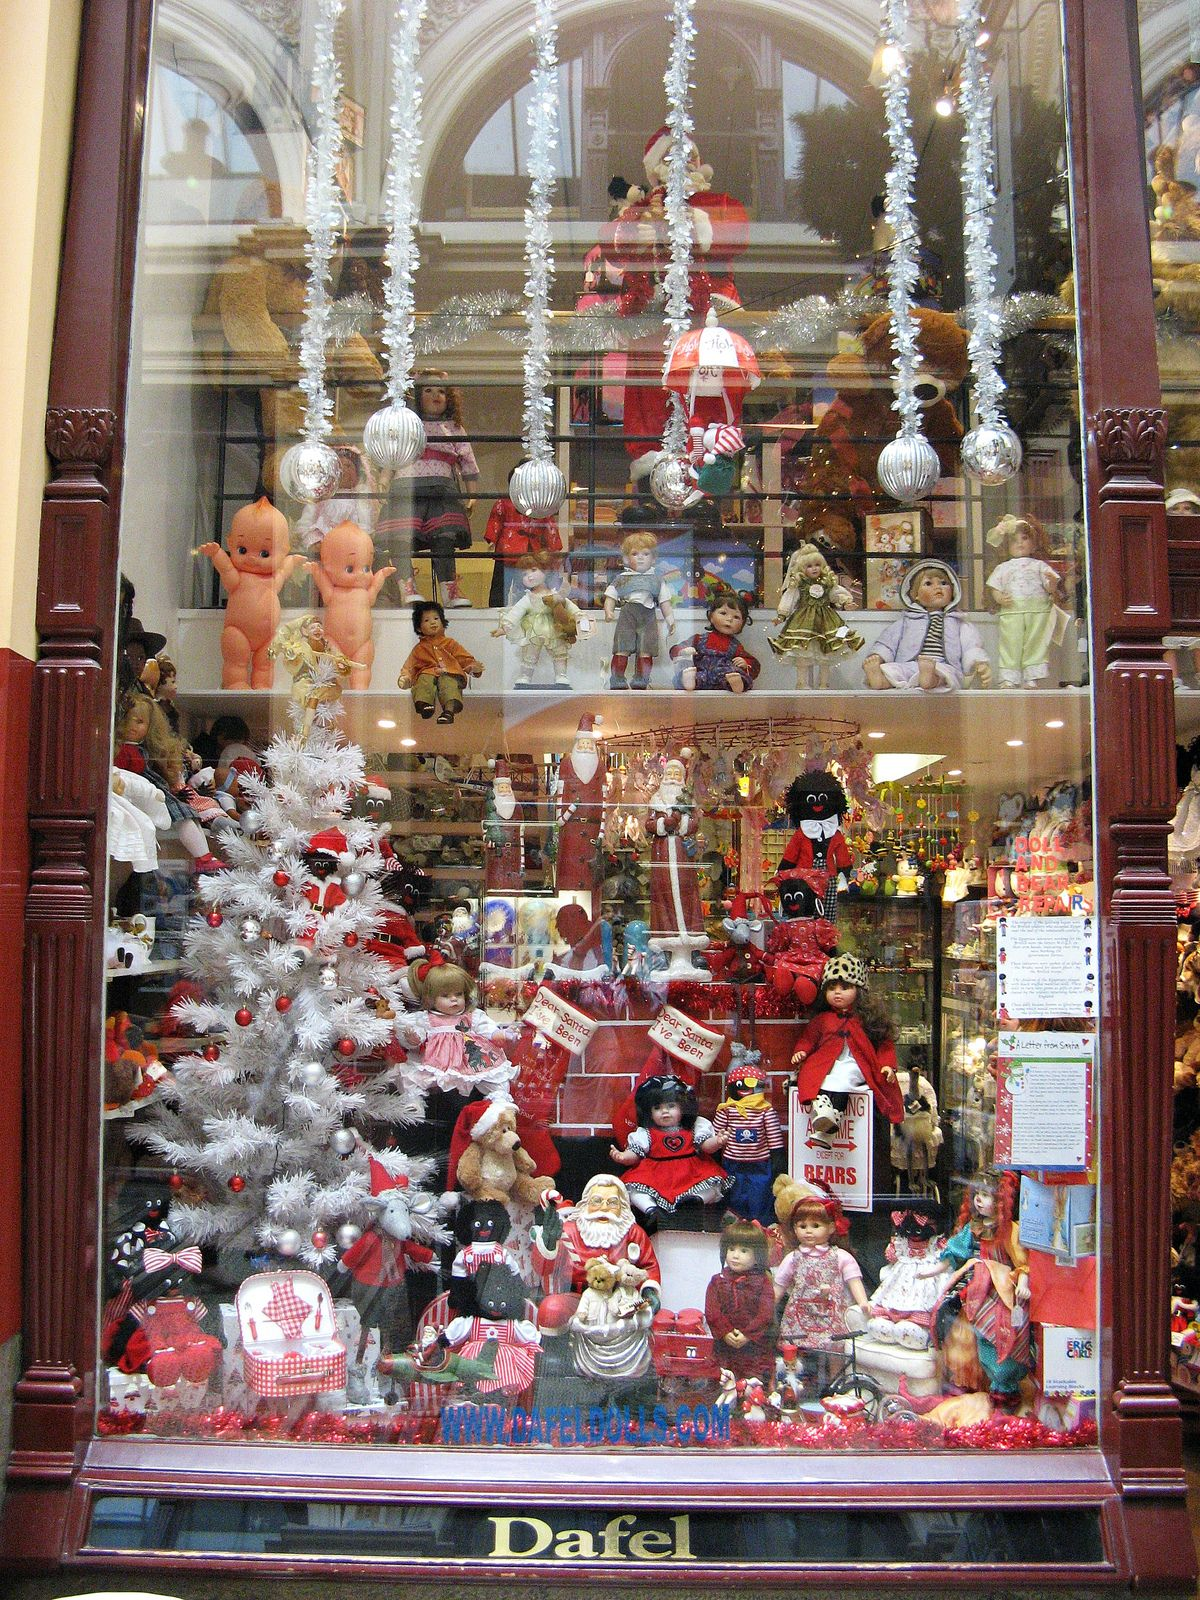 Toy Shop Window Block Arcade Melbourne Australia Christmas Decorations Holiday Decor Tea Room